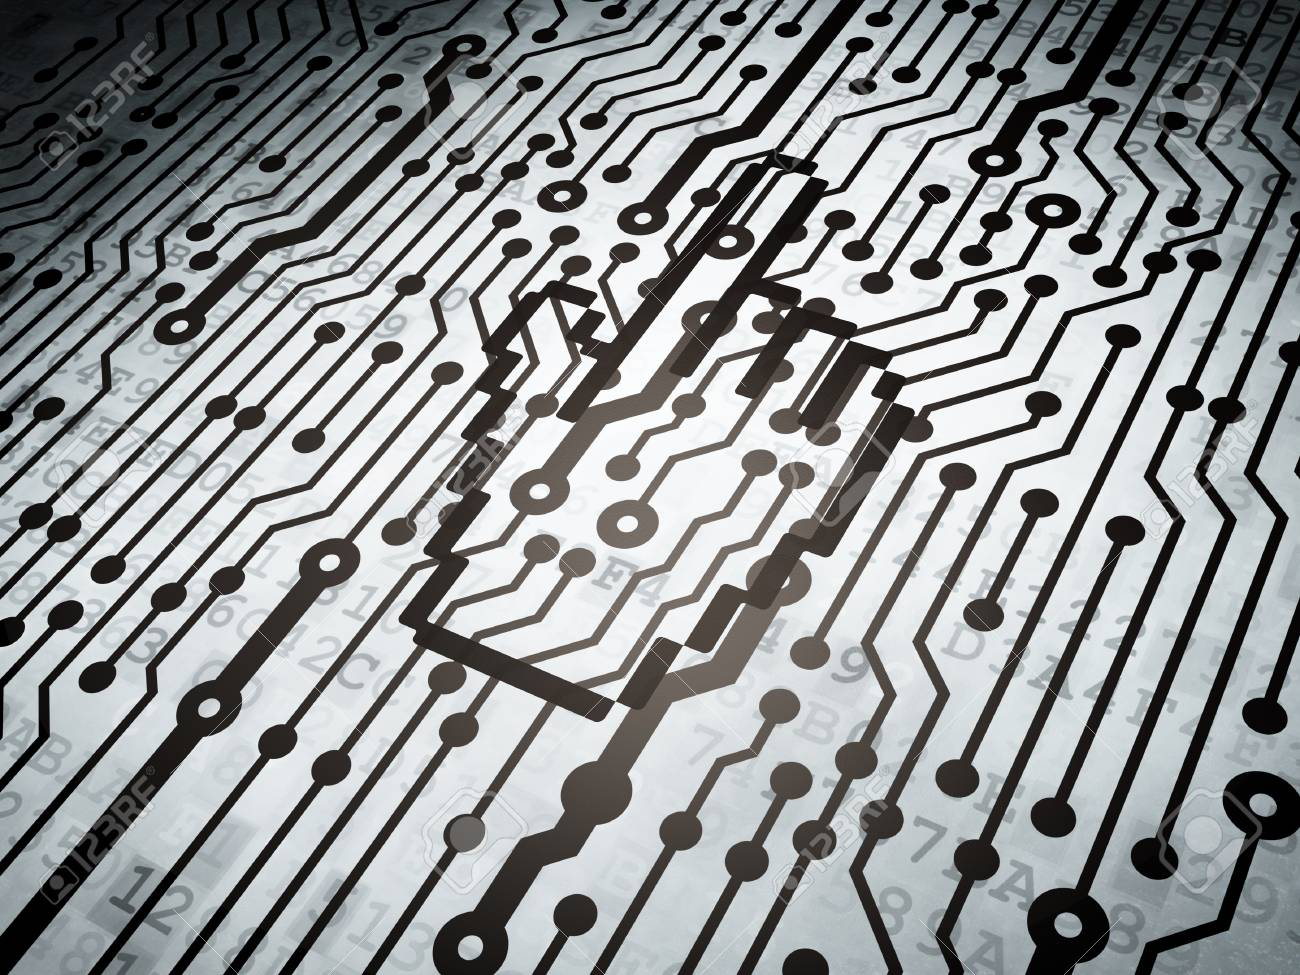 Web Development Concept Circuit Board With Mouse Cursor Icon Stock Photo 3d Render